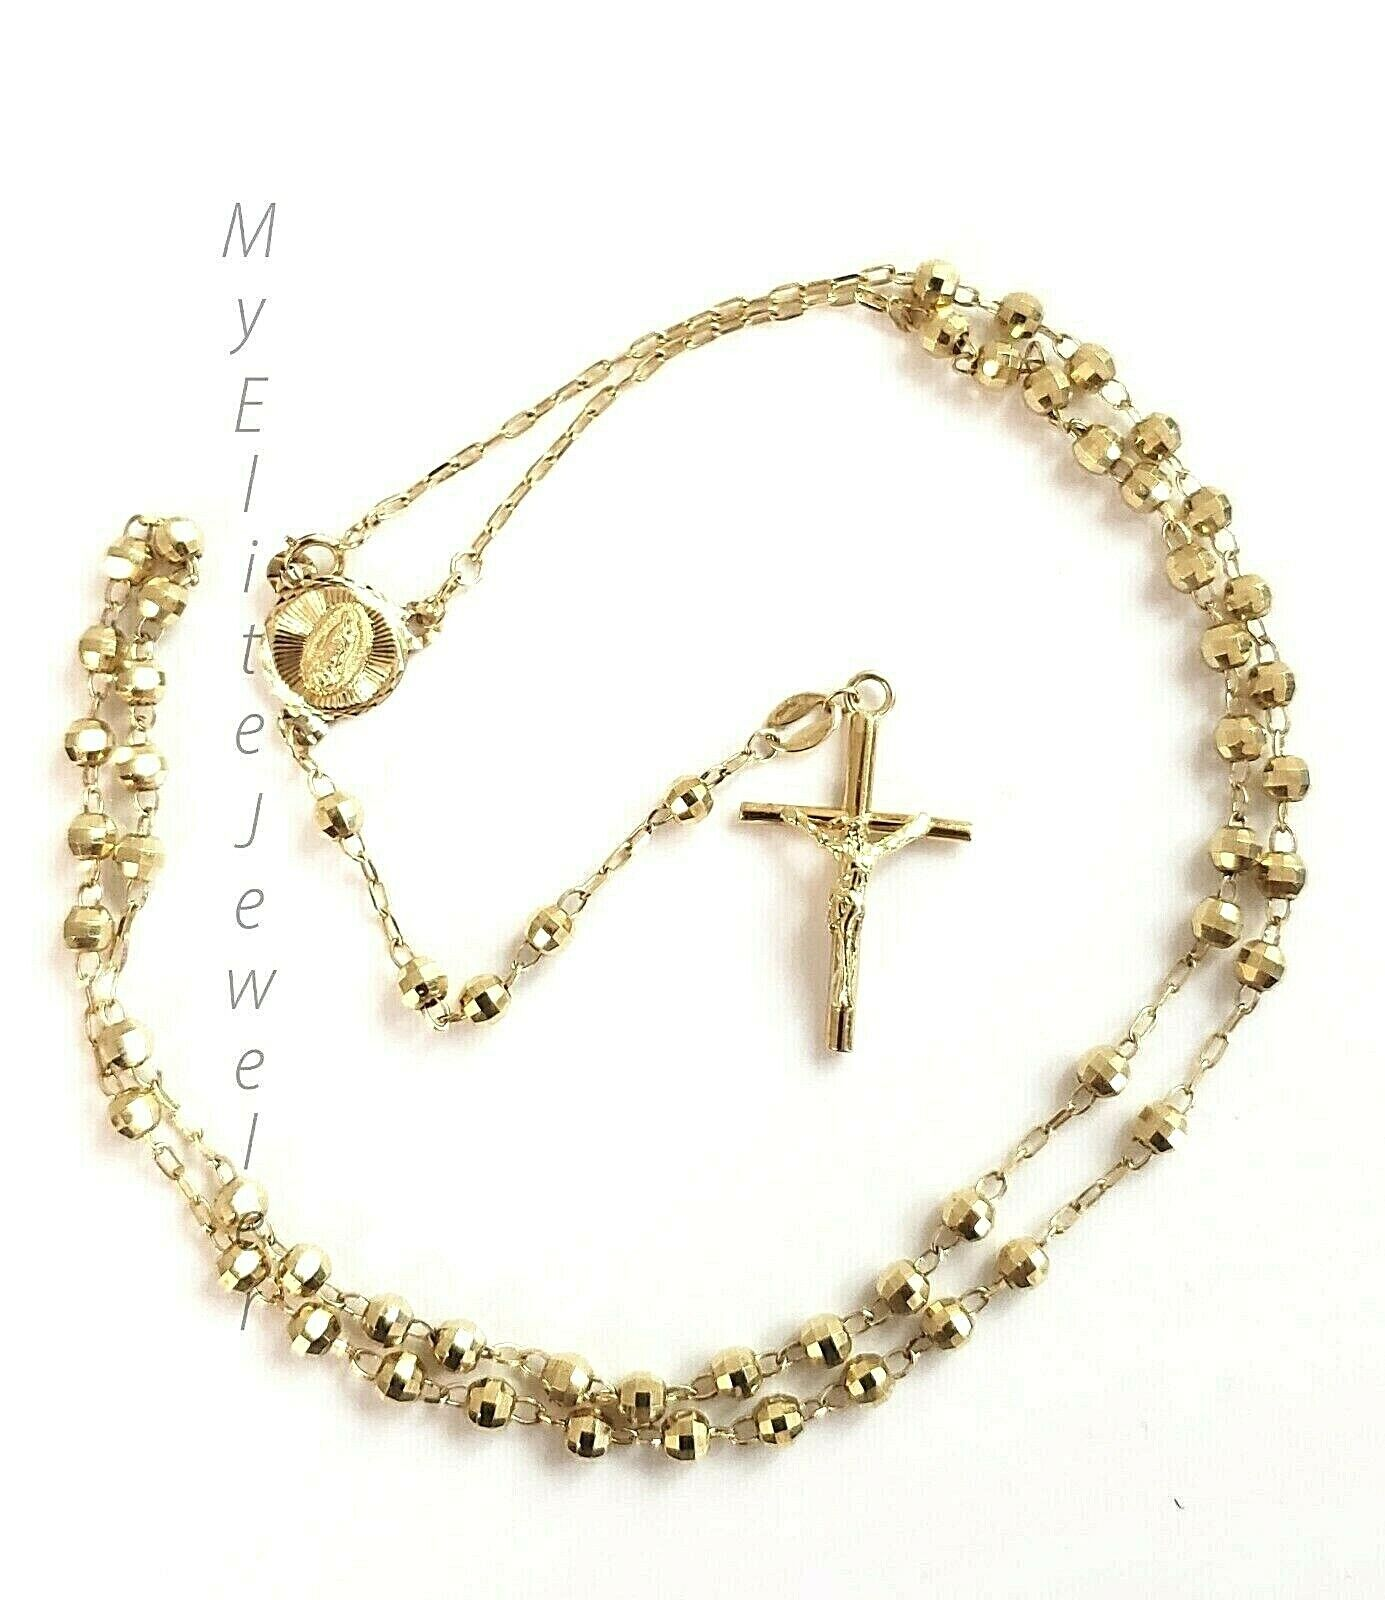 10K  Yellow Gold Chain Rosary Beads Necklace With Jesus Cros